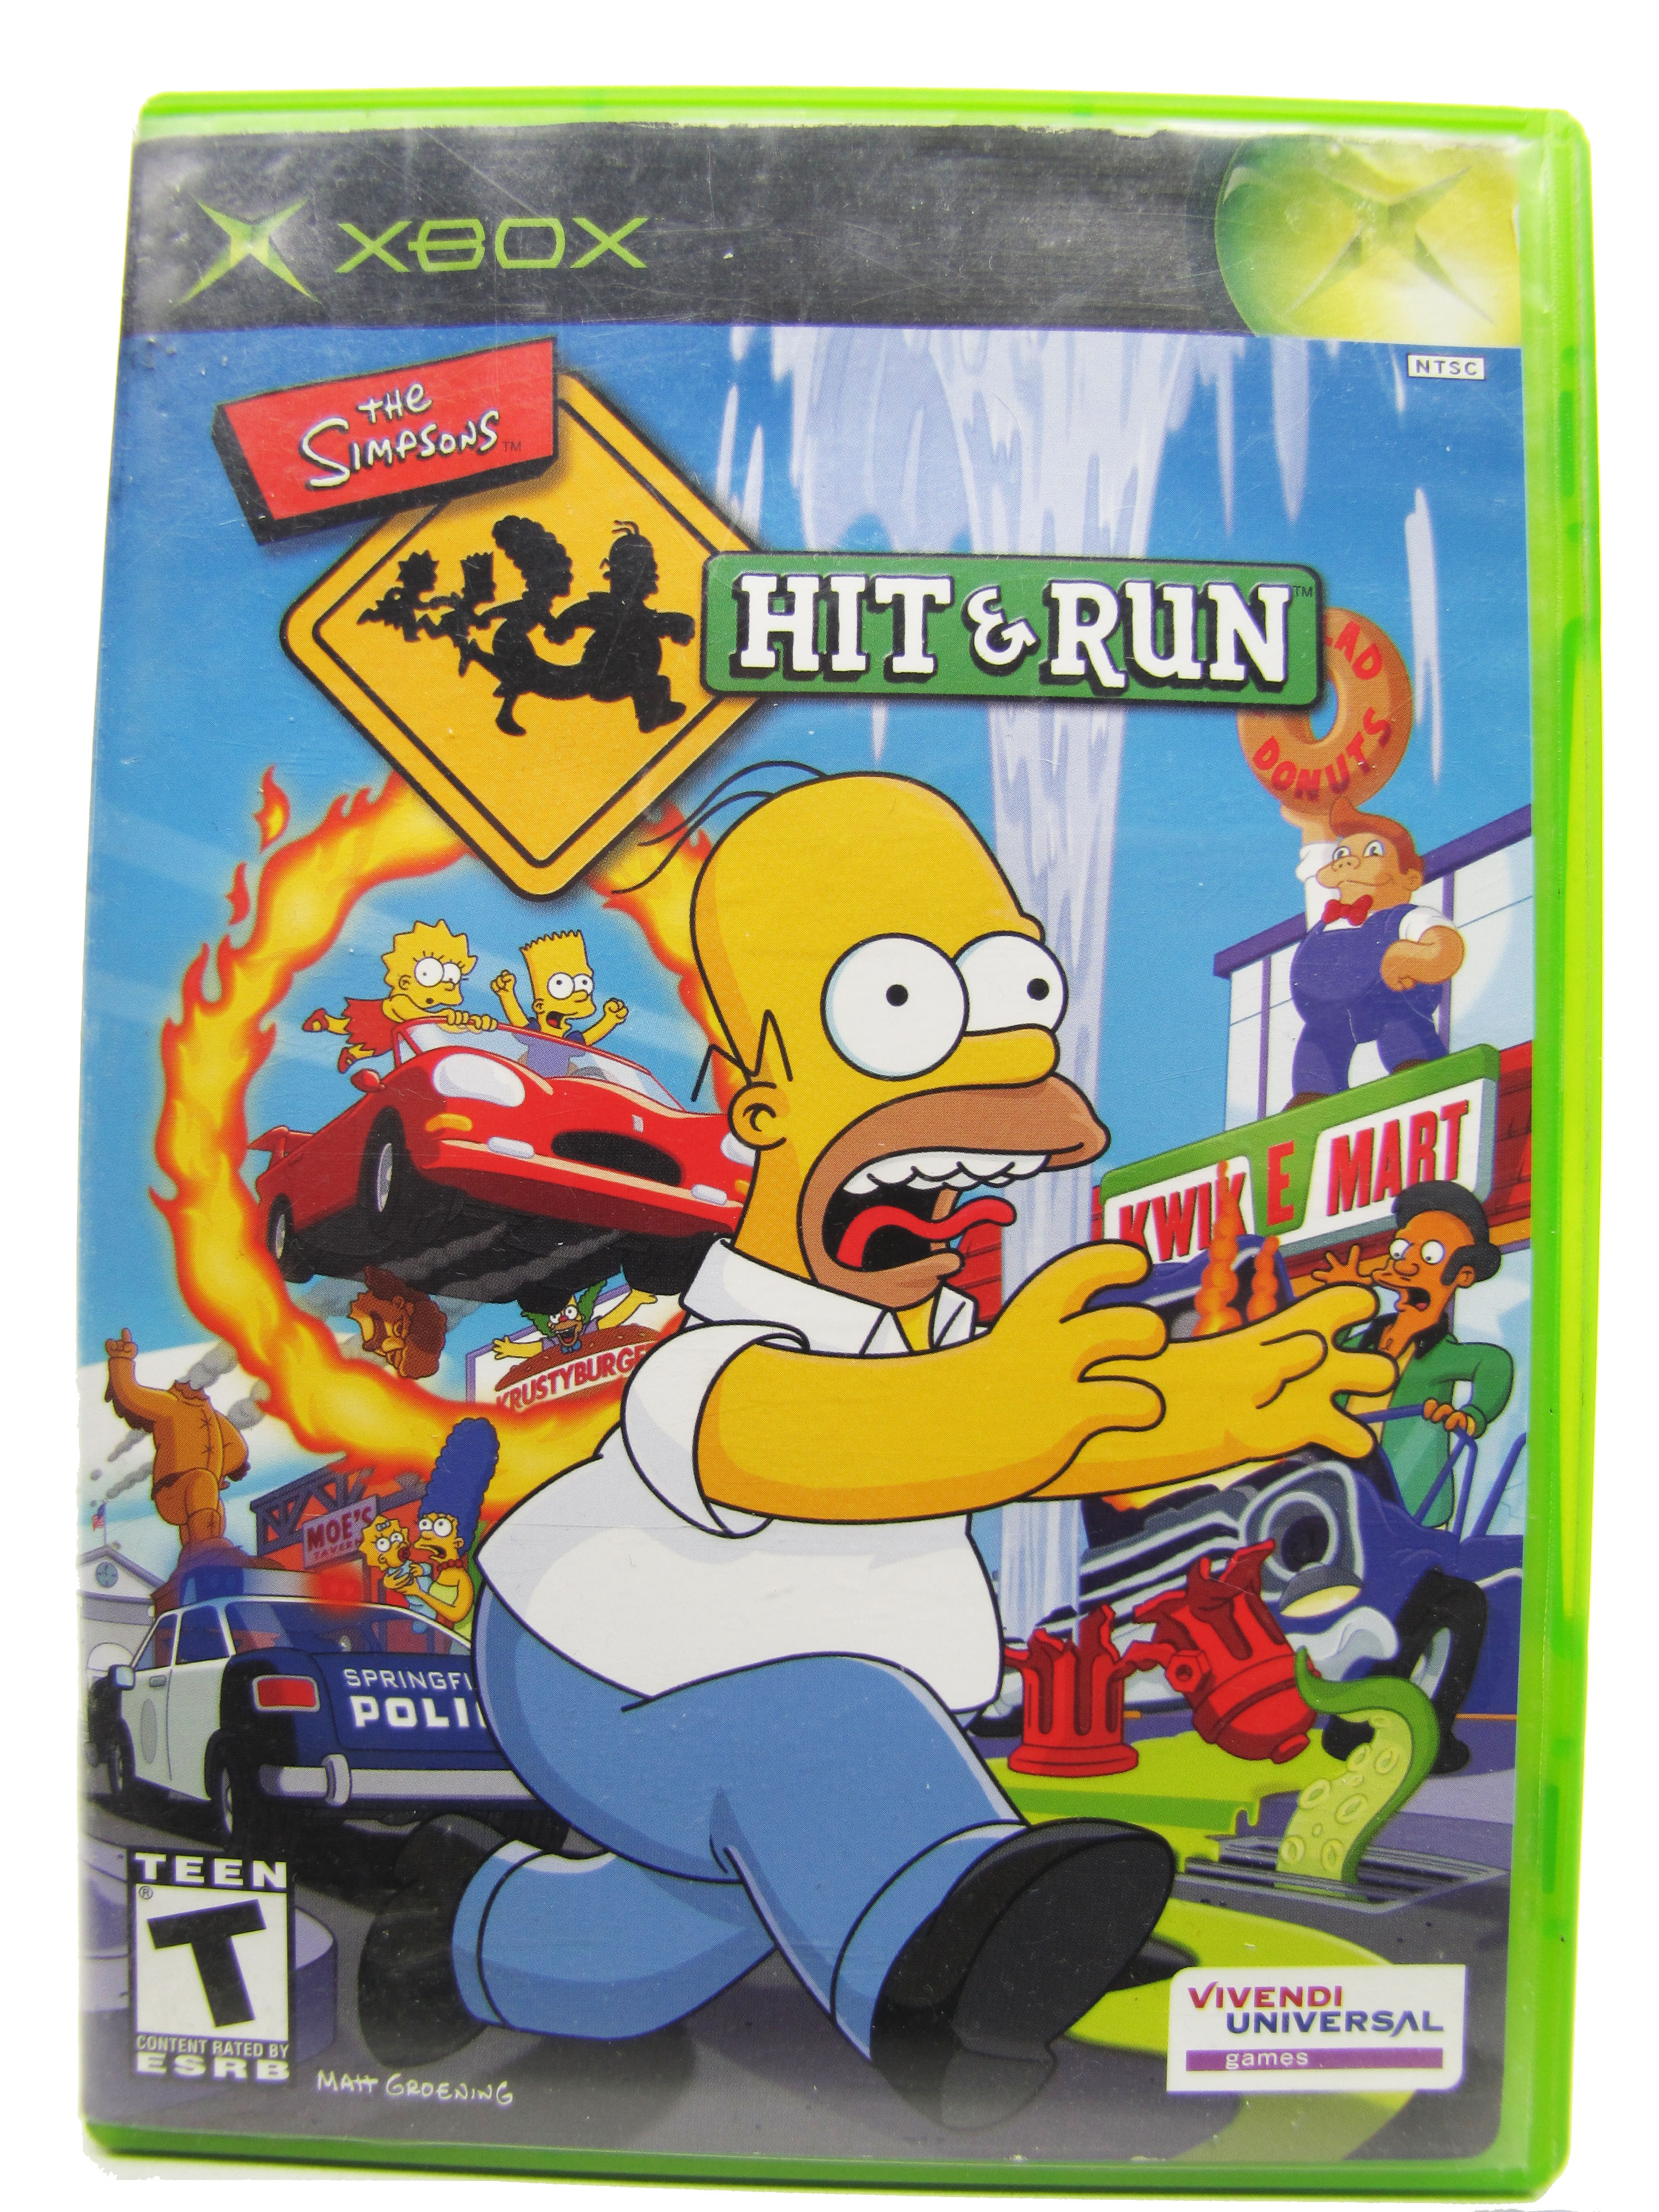 XBOX The Simpsons: Hit & Run